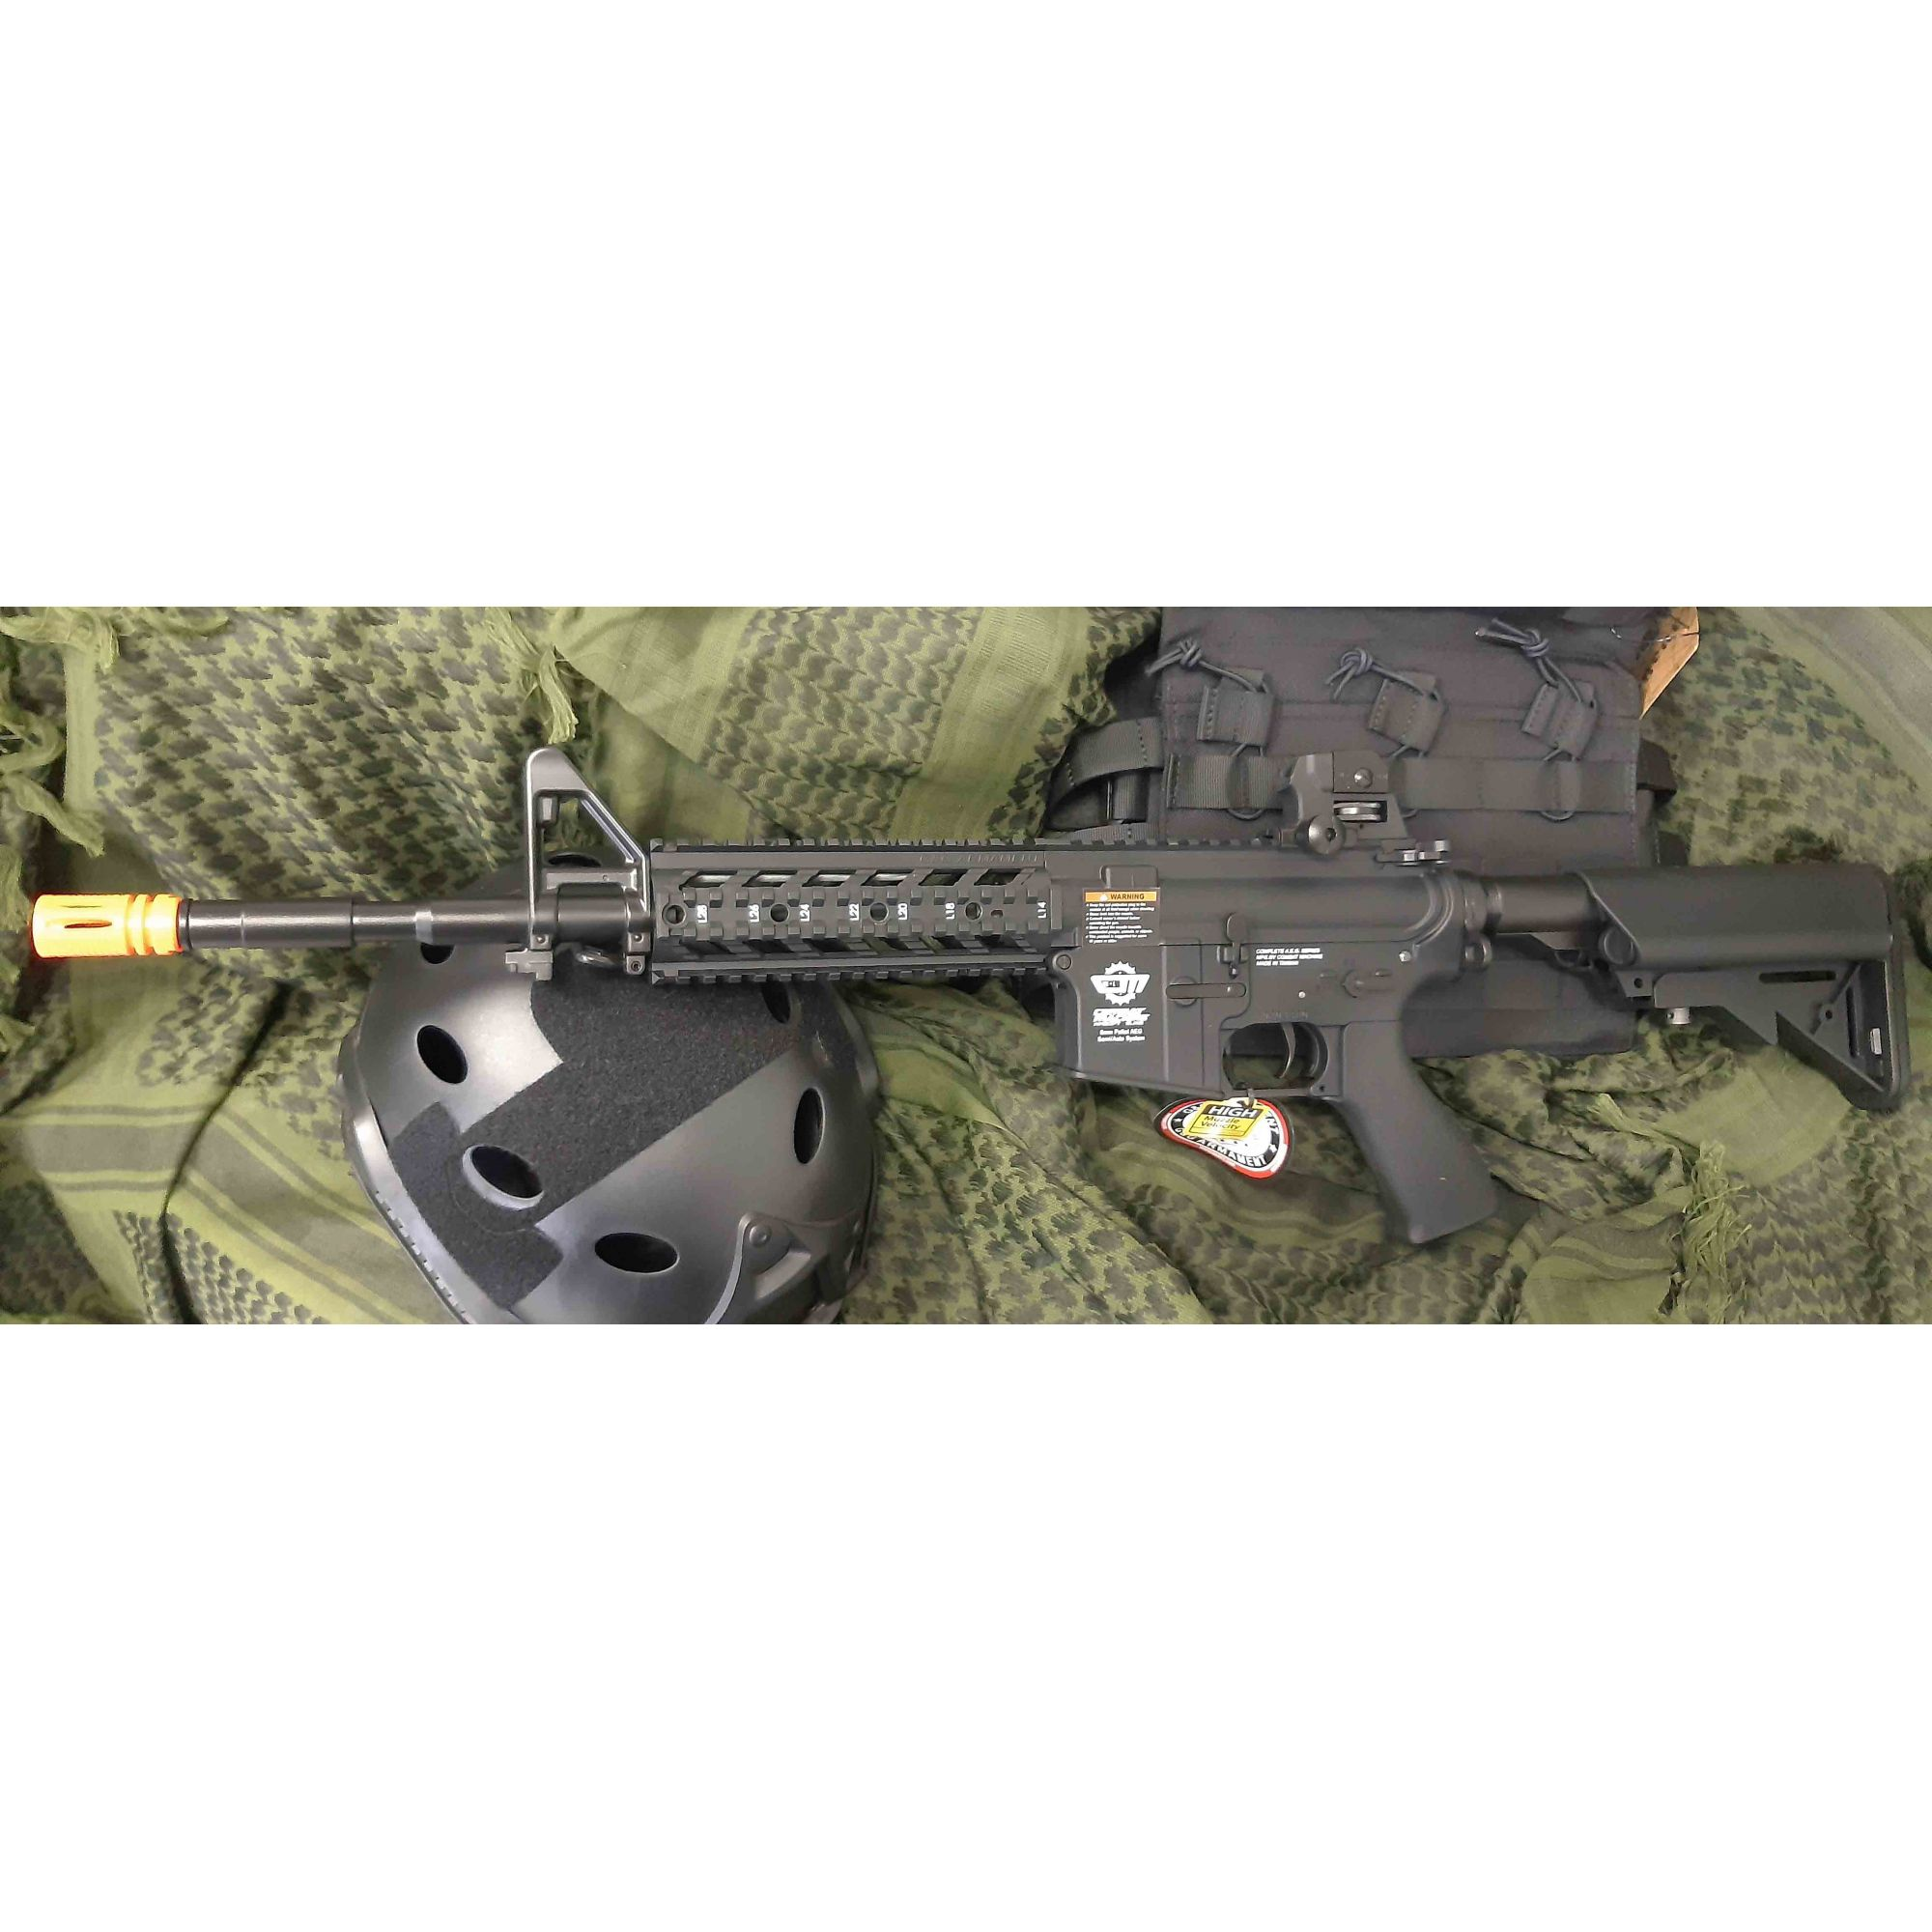 Rifle Airsoft AEG M4A1 CM16 Raider L - G&G -  Calibre 6 mm